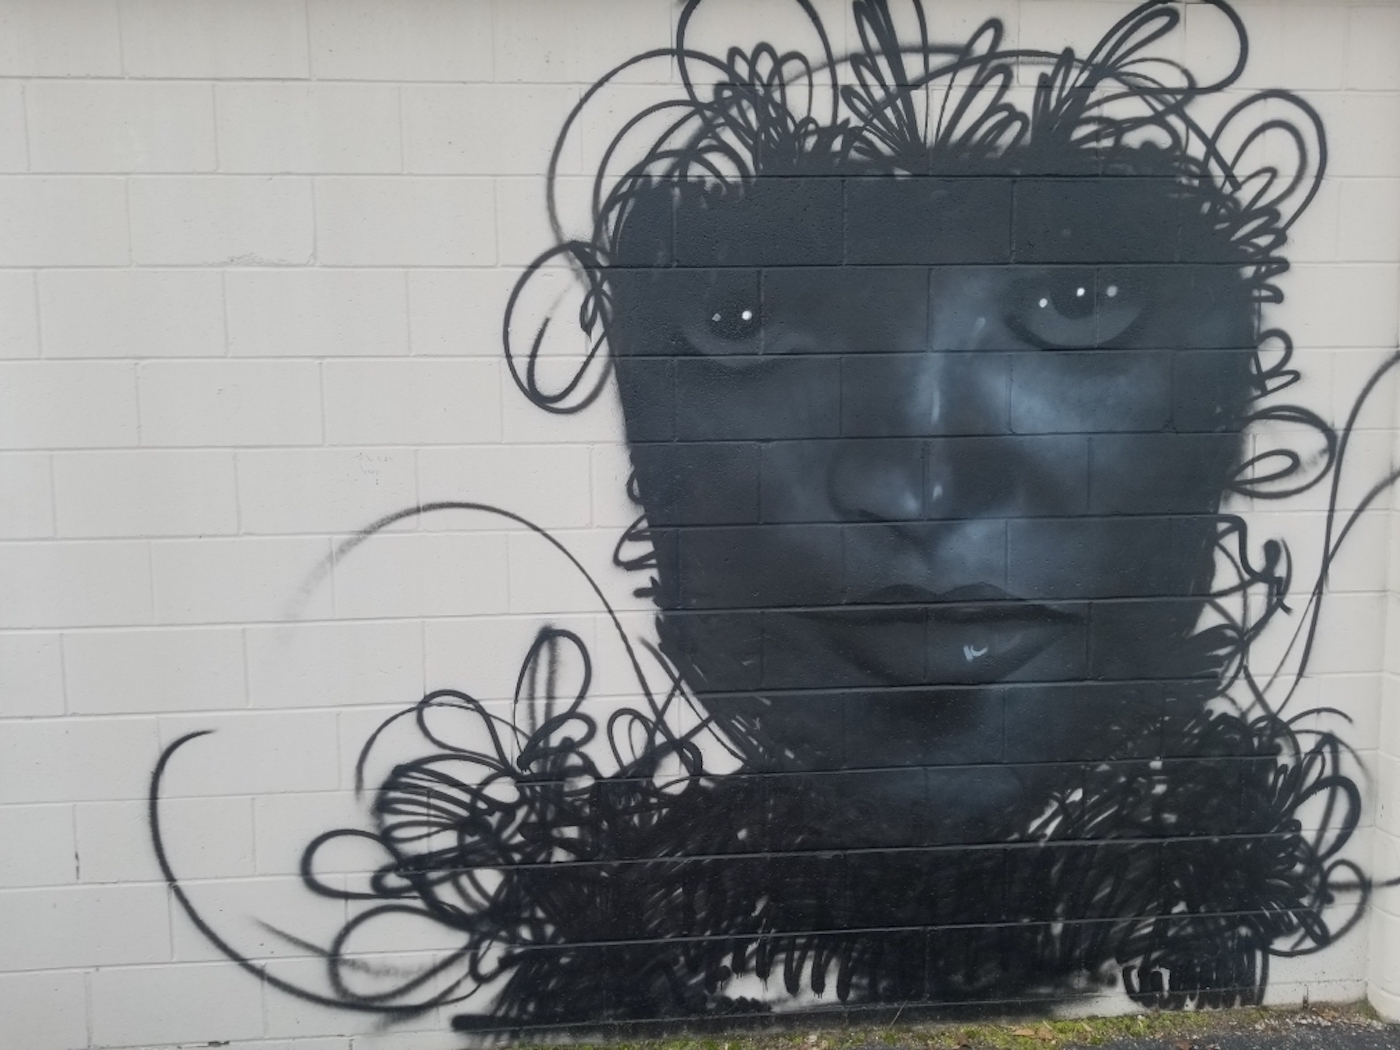 Artisan Alley, 'Woman in Fog' (2020), 222 W. 2nd St., artist — Prince Parise | Courtesy photo